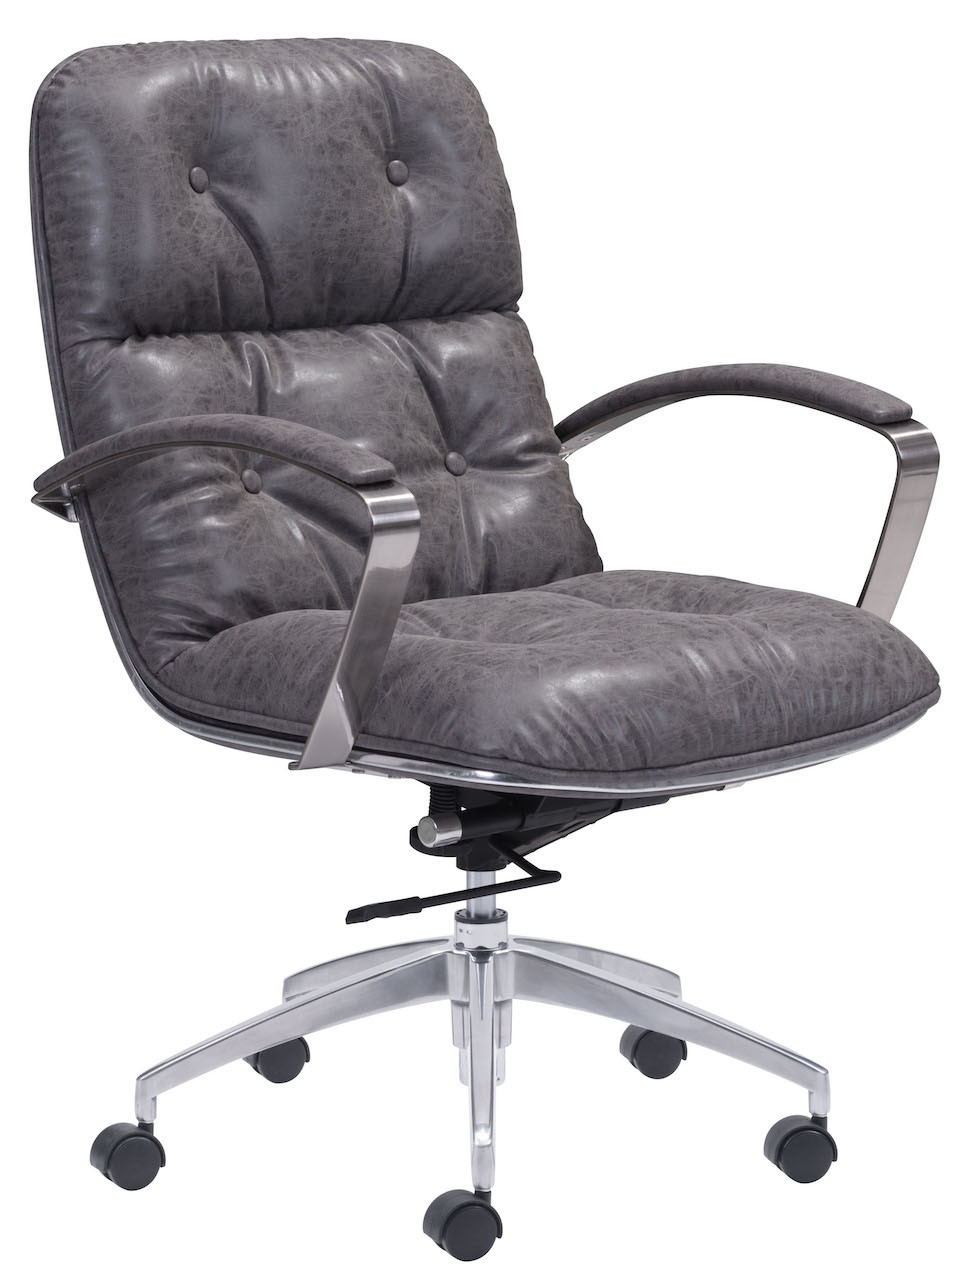 vintage office chair. Contemporary Vintage Avenue Office Chair Vintage Gray Inside I